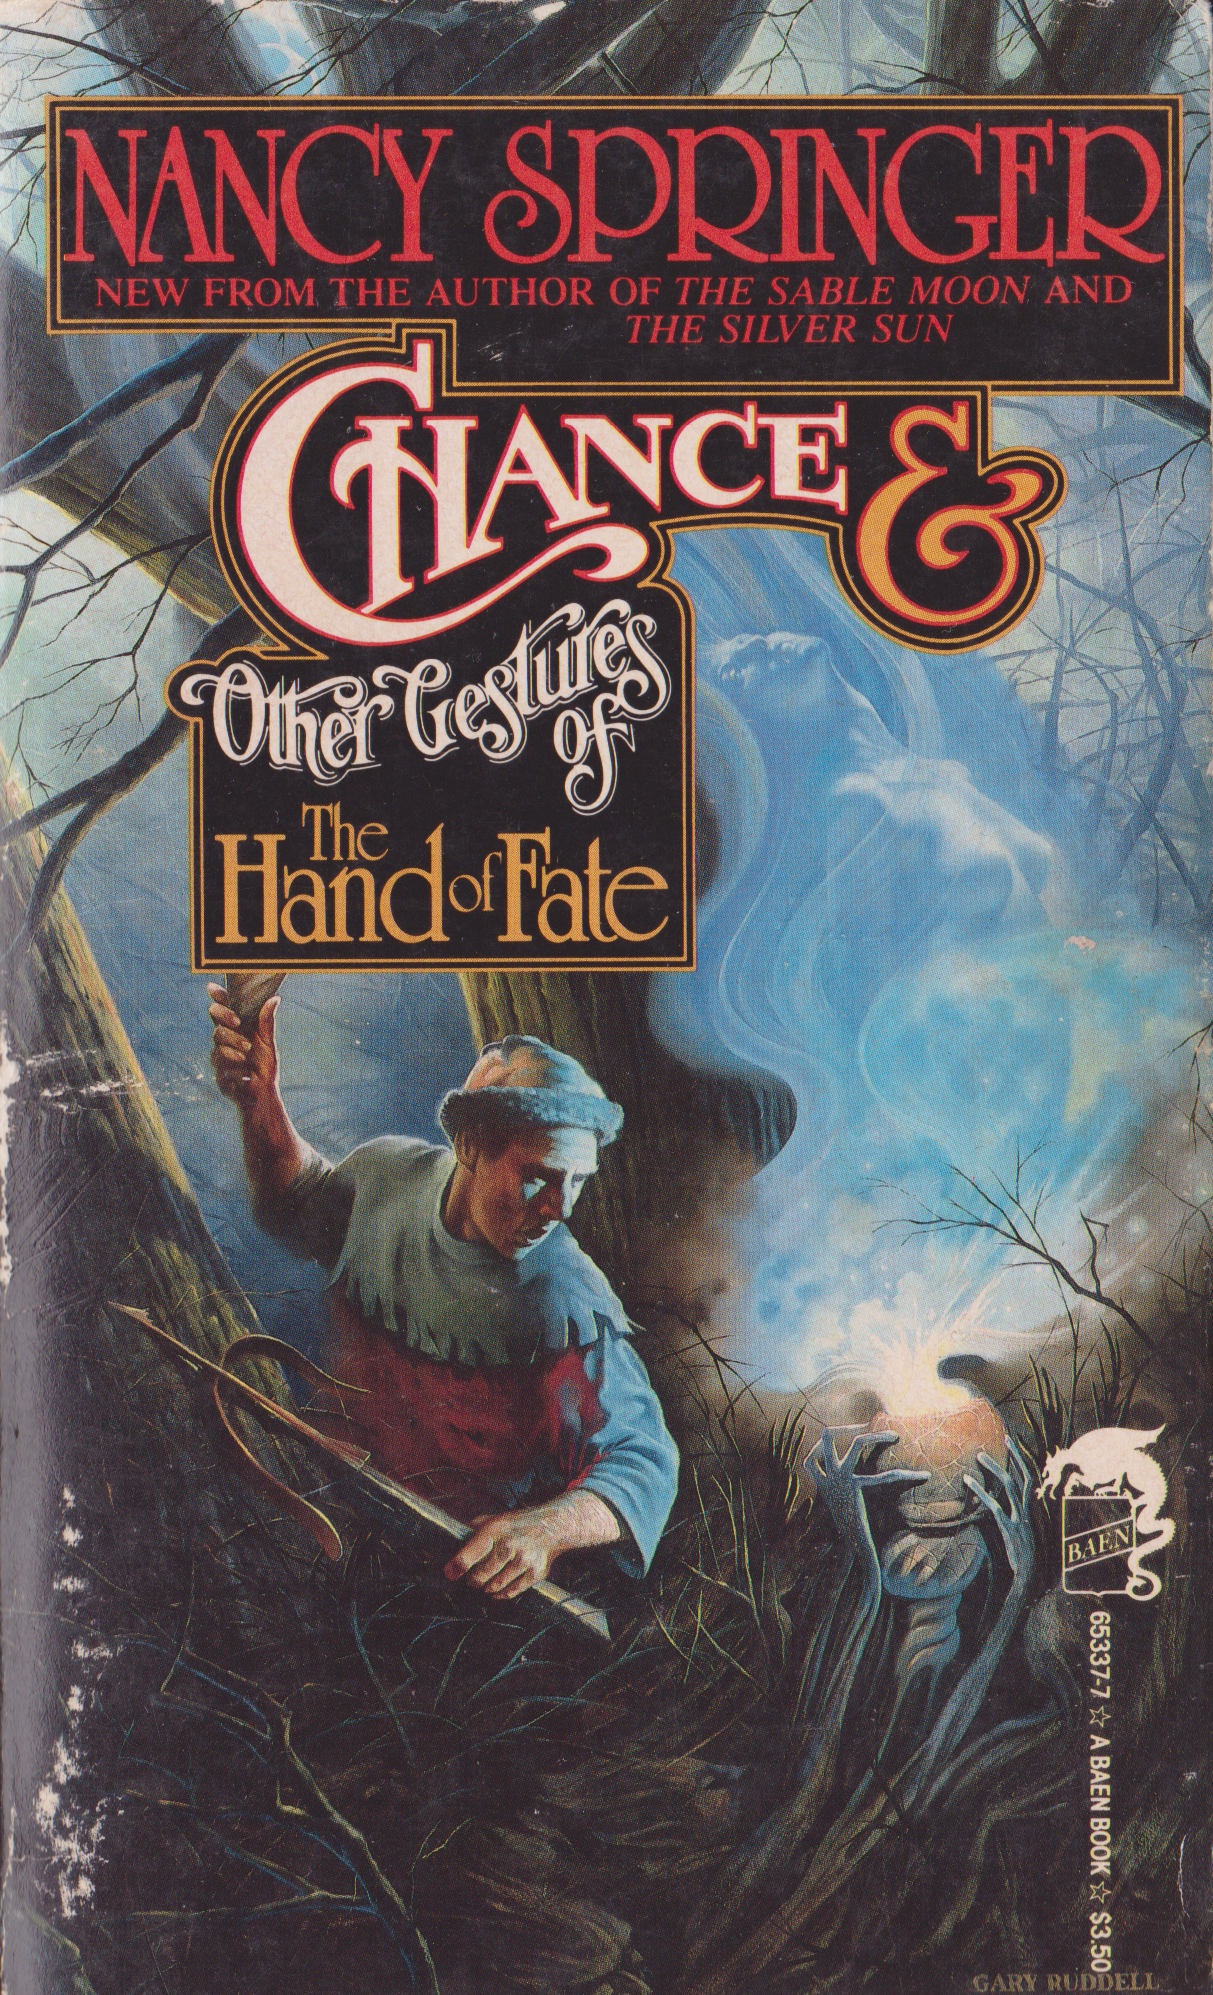 Chance and Other Gestures of the Hand of Fate by Nancy Springer-front.png